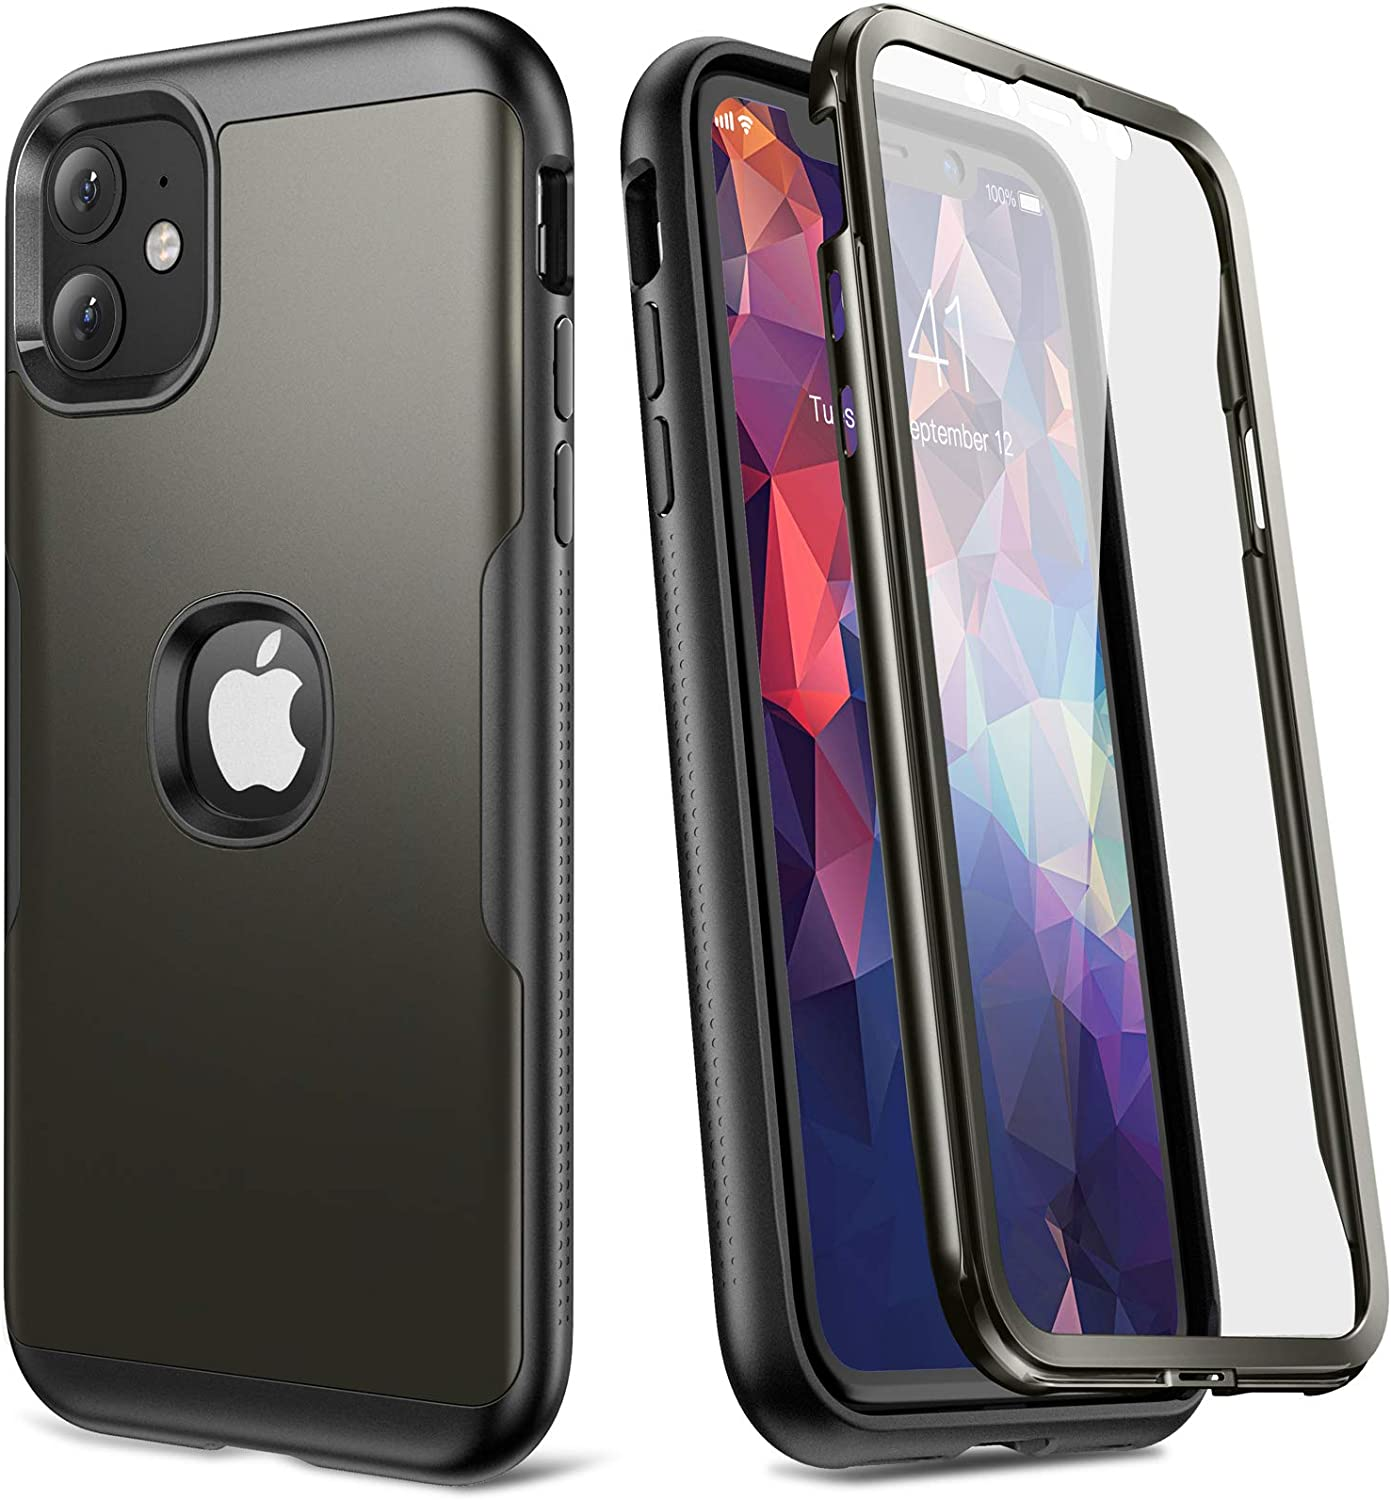 YOUMAKER Metallic Designed for iPhone 11 Case, Full Body Rugged with Built-in Screen Protector Heavy Duty Protection Slim Fit Shockproof Cover for iPhone 11 Case 6.1 Inch-Gun